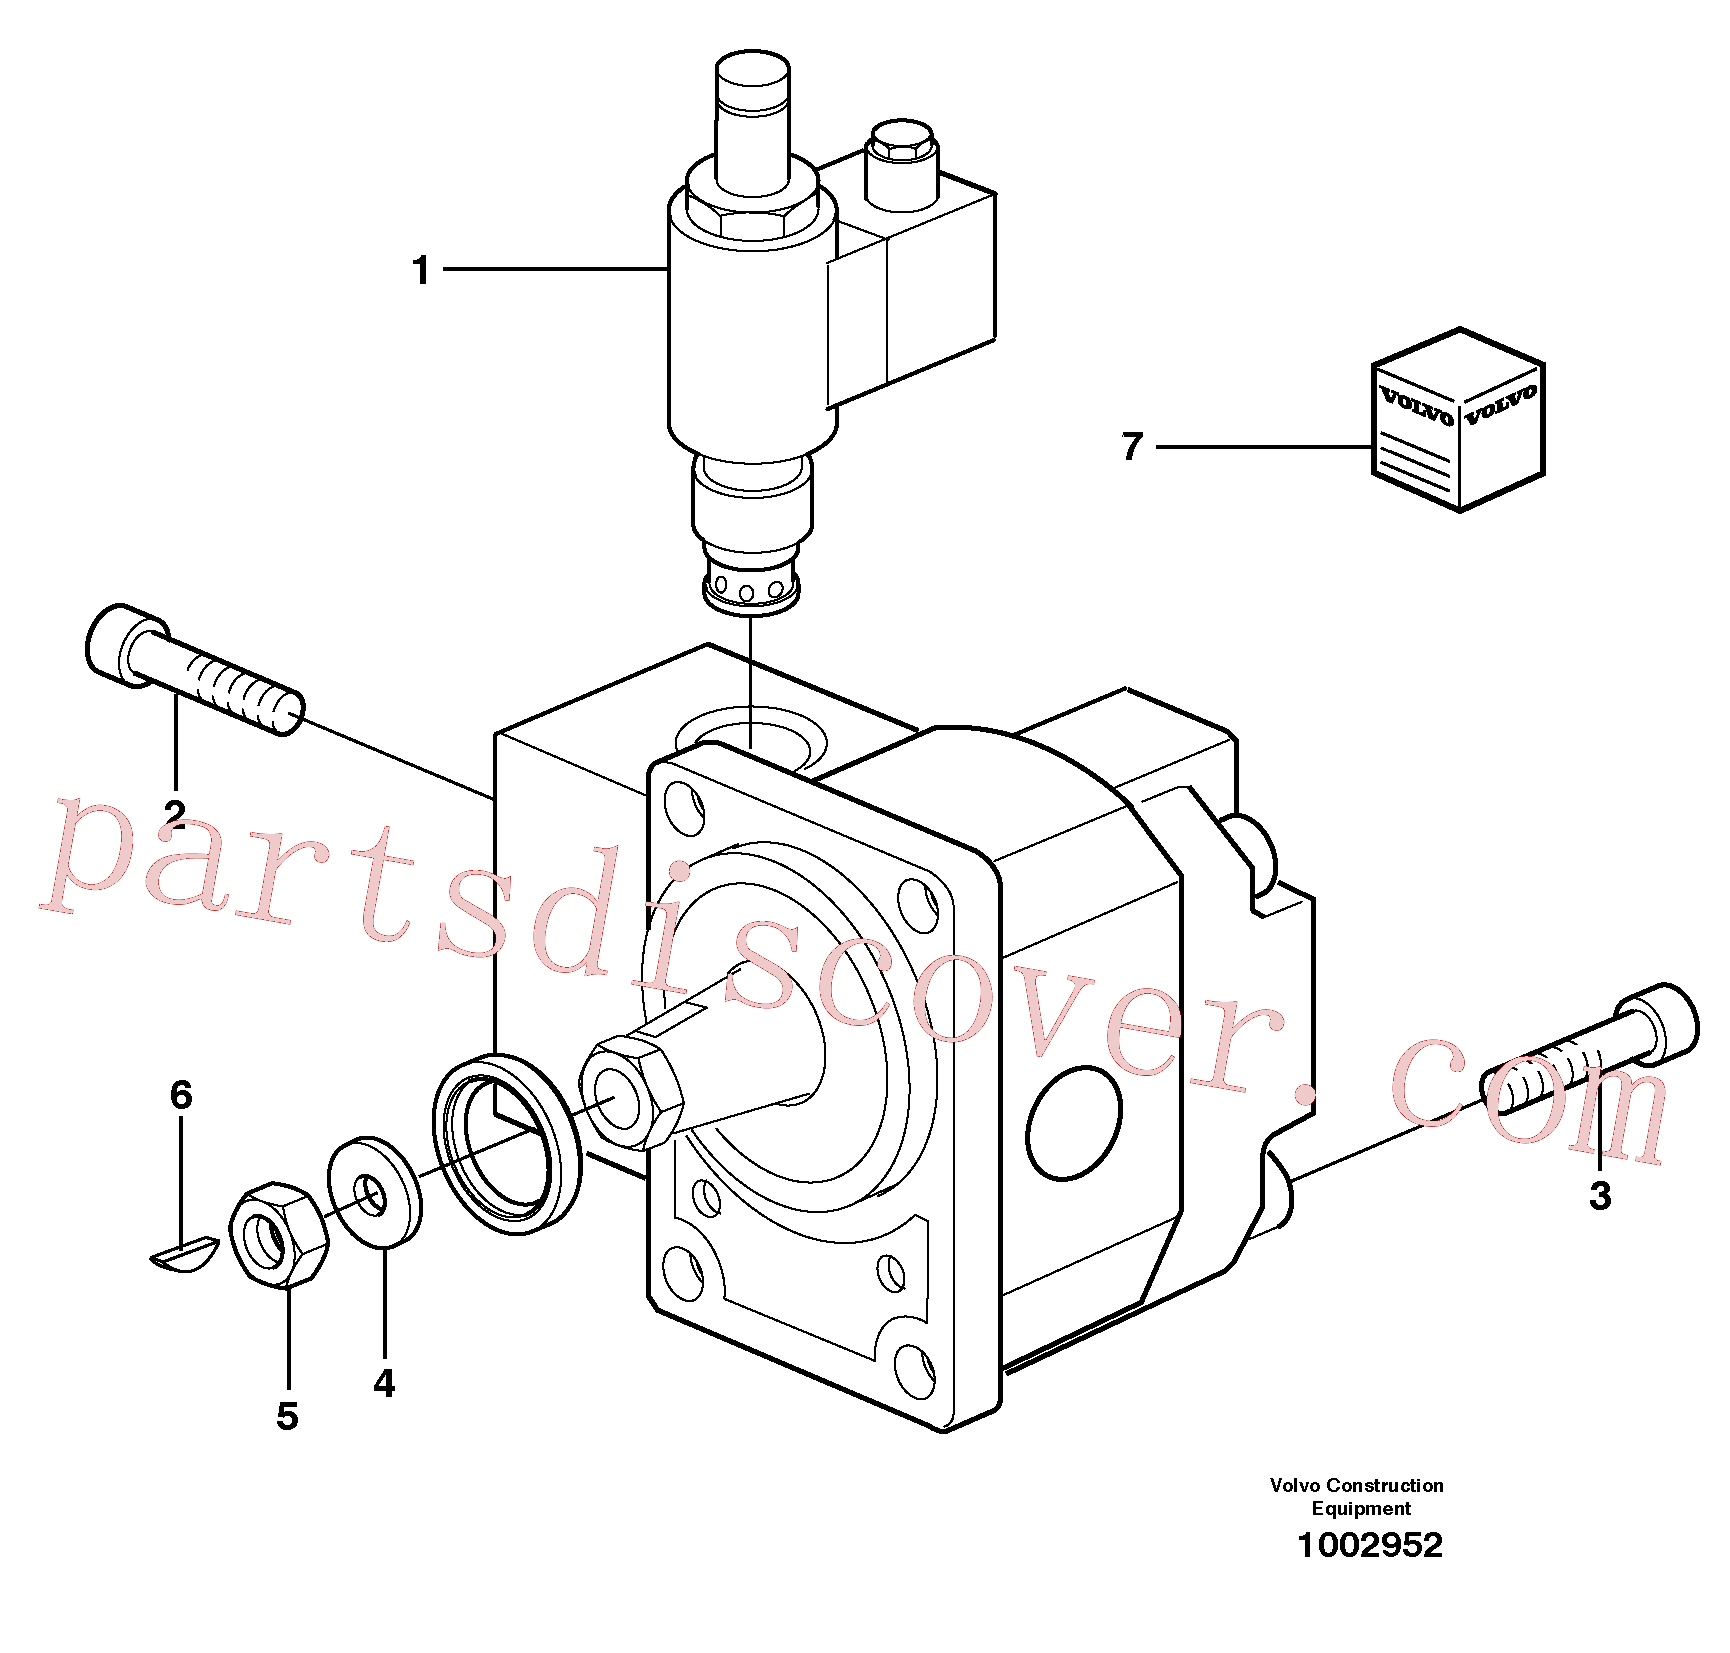 SA9286-19000 for Volvo Hydraulic motor(1002952 assembly)